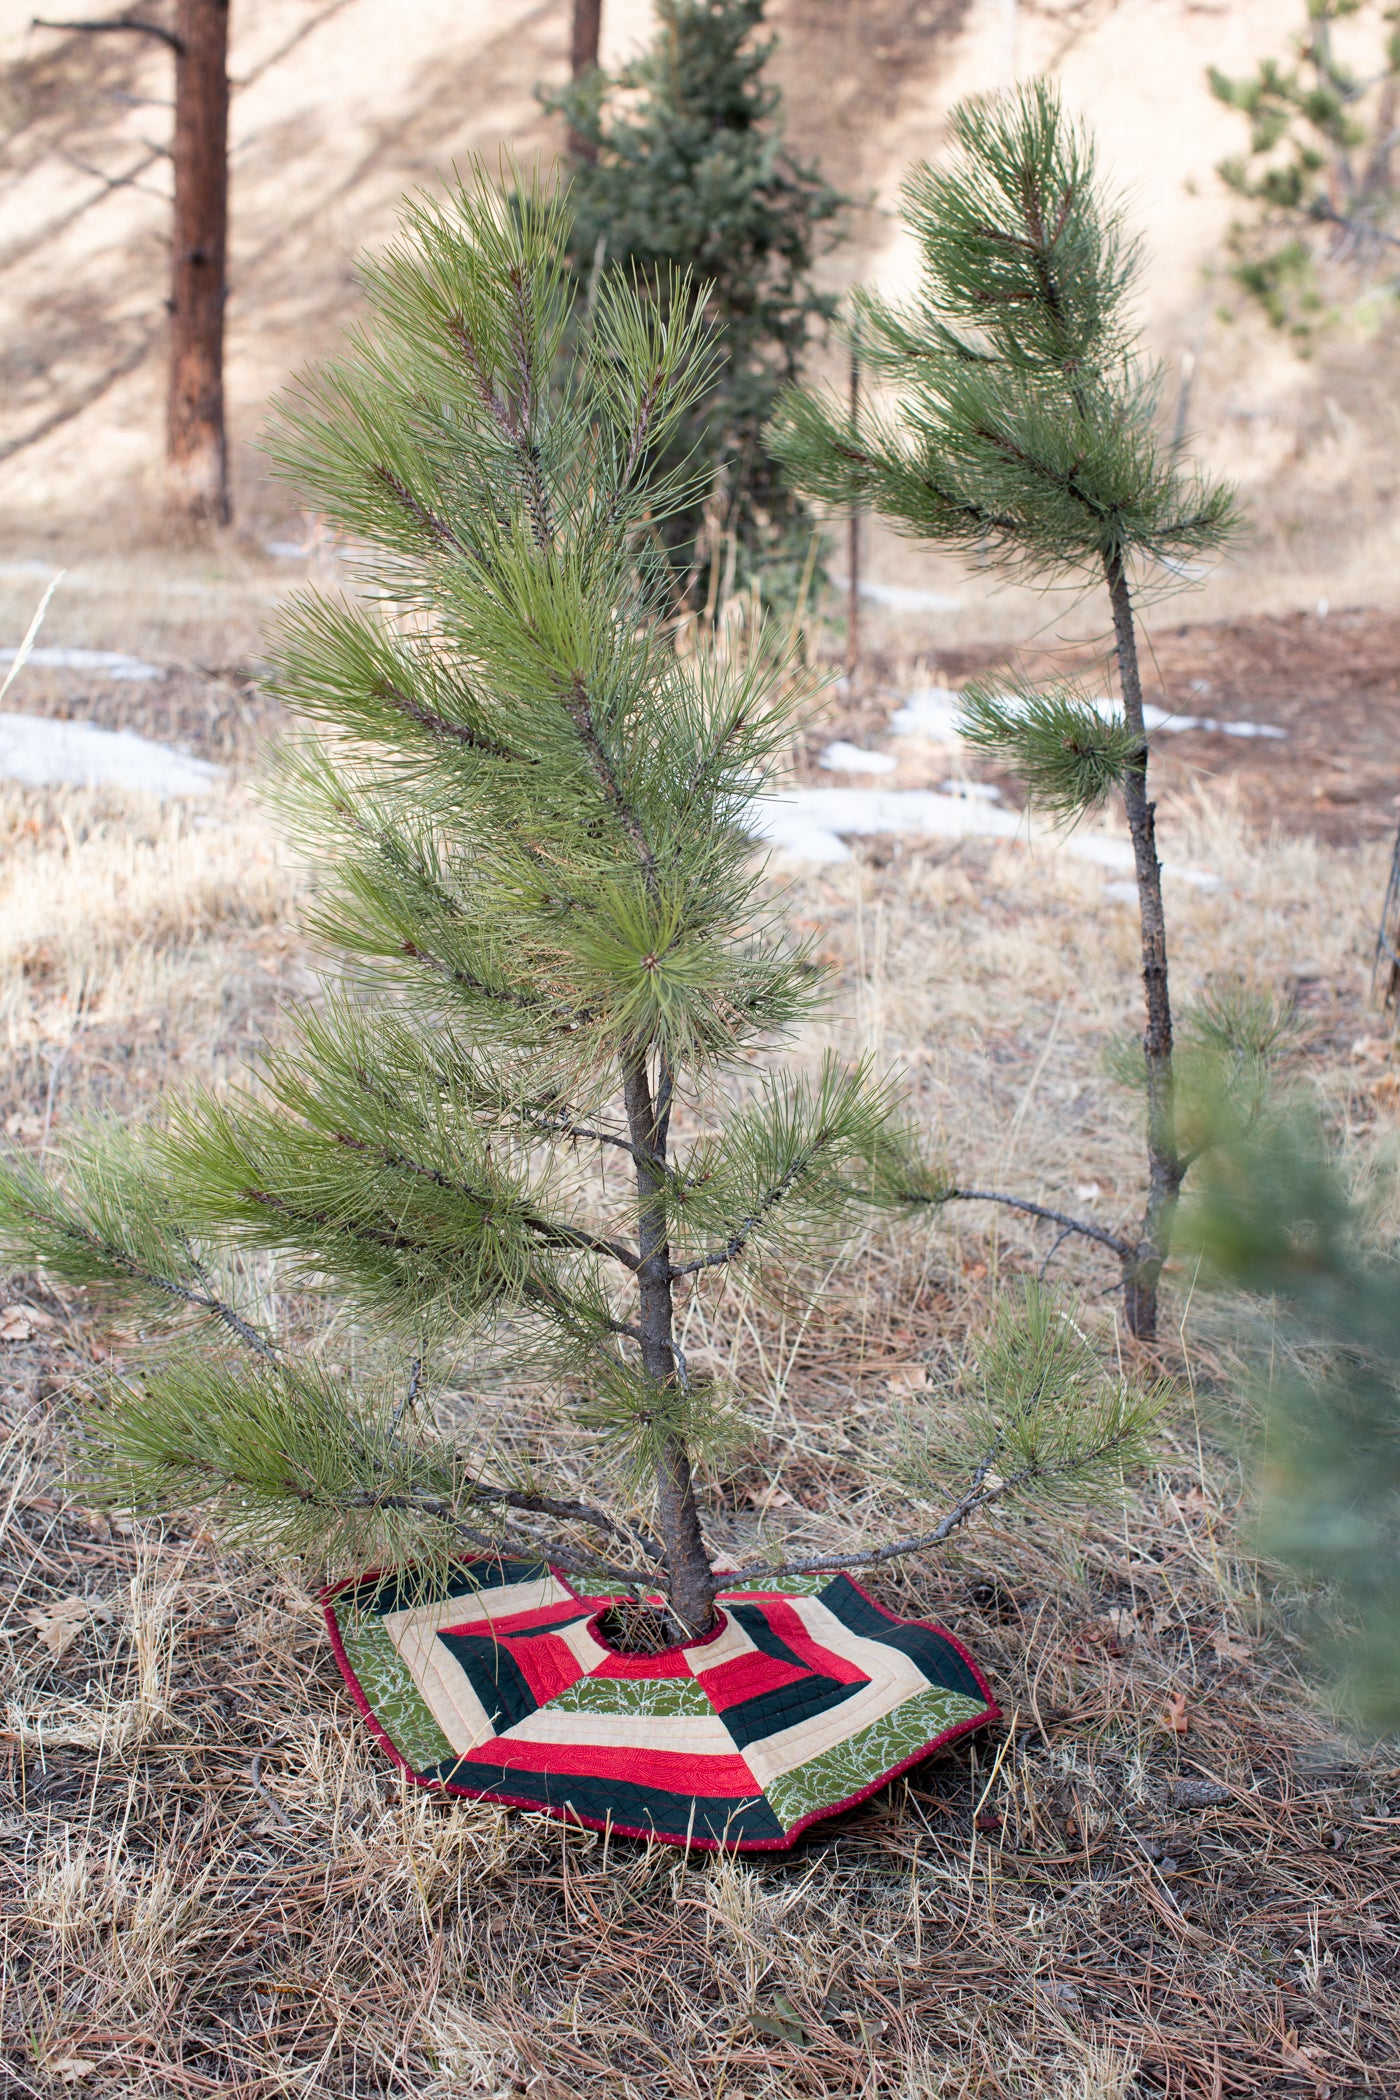 Pine tree outside with a Christmas tree Skirt at the bottom.